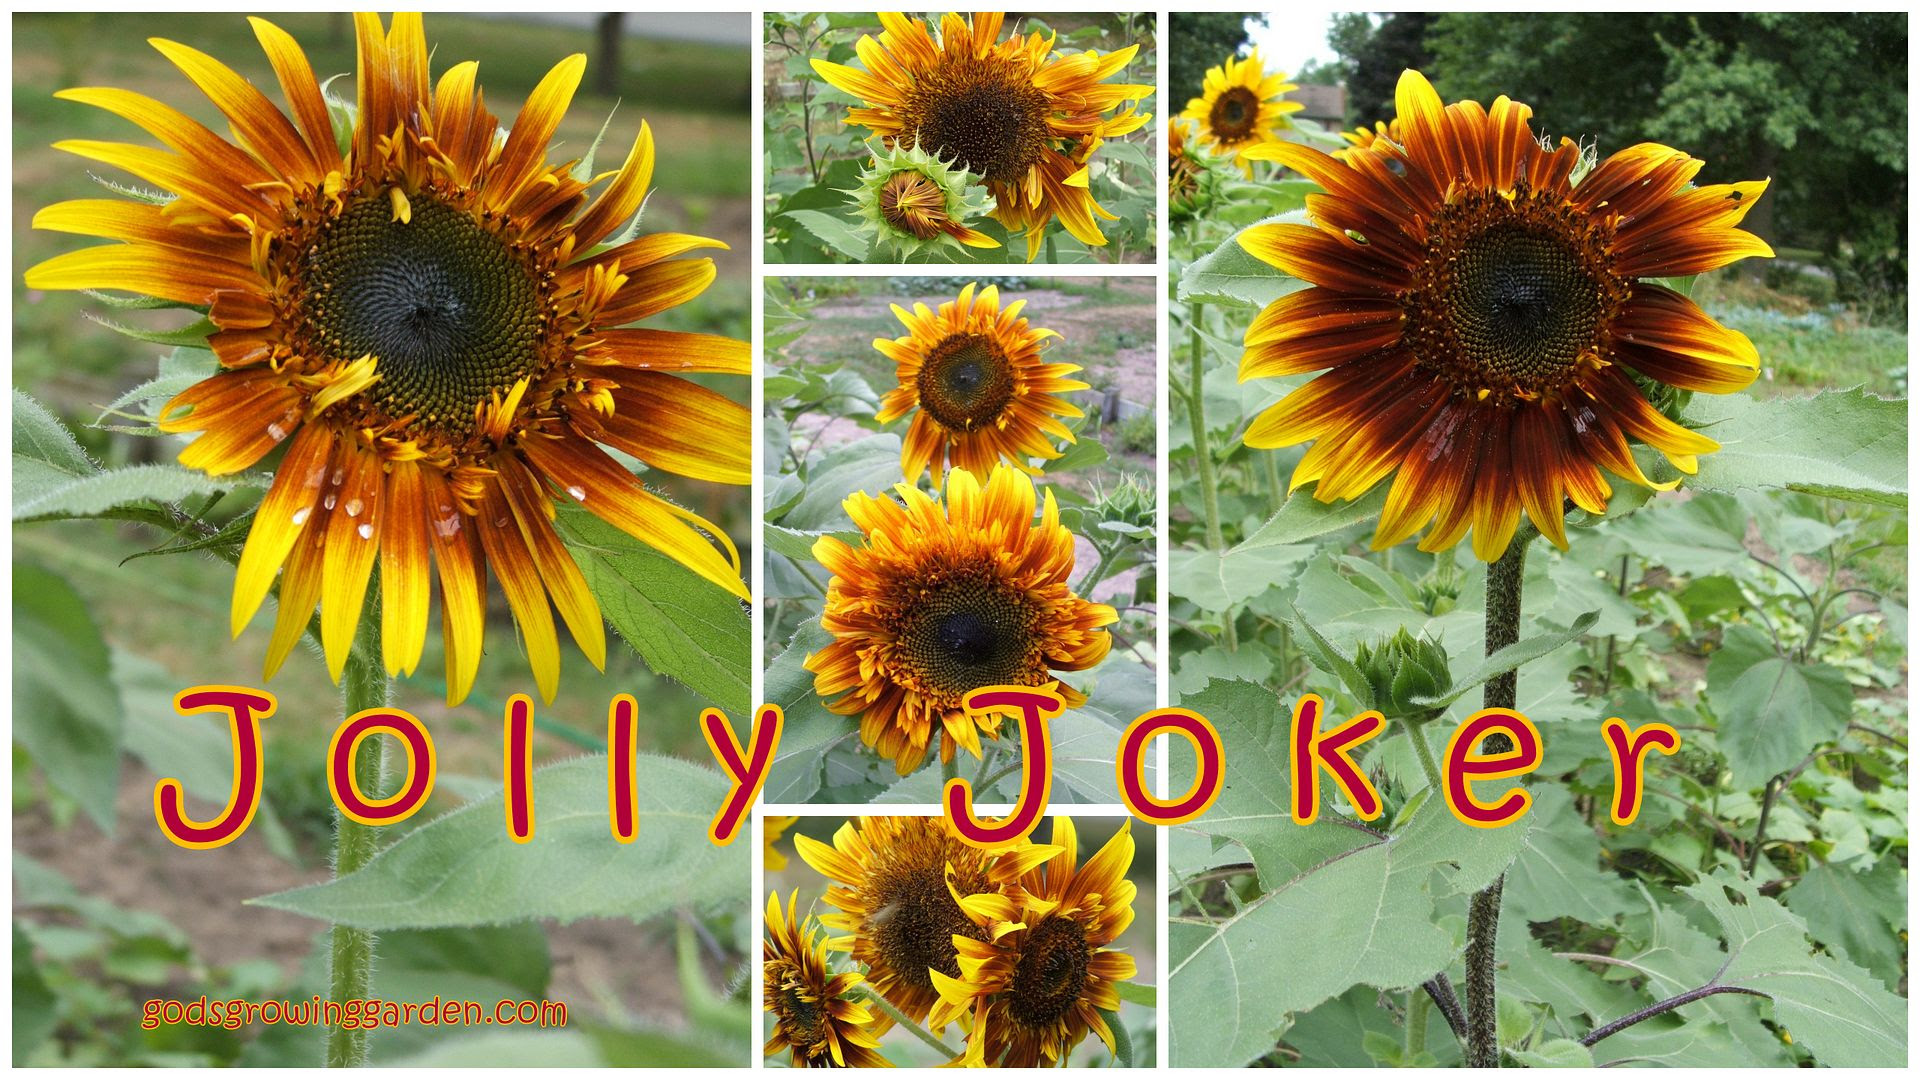 sunflowers by Angie Ouellette-Tower for godsgrowinggarden.com photo 2012-07-29_zps93a5c1d2.jpg